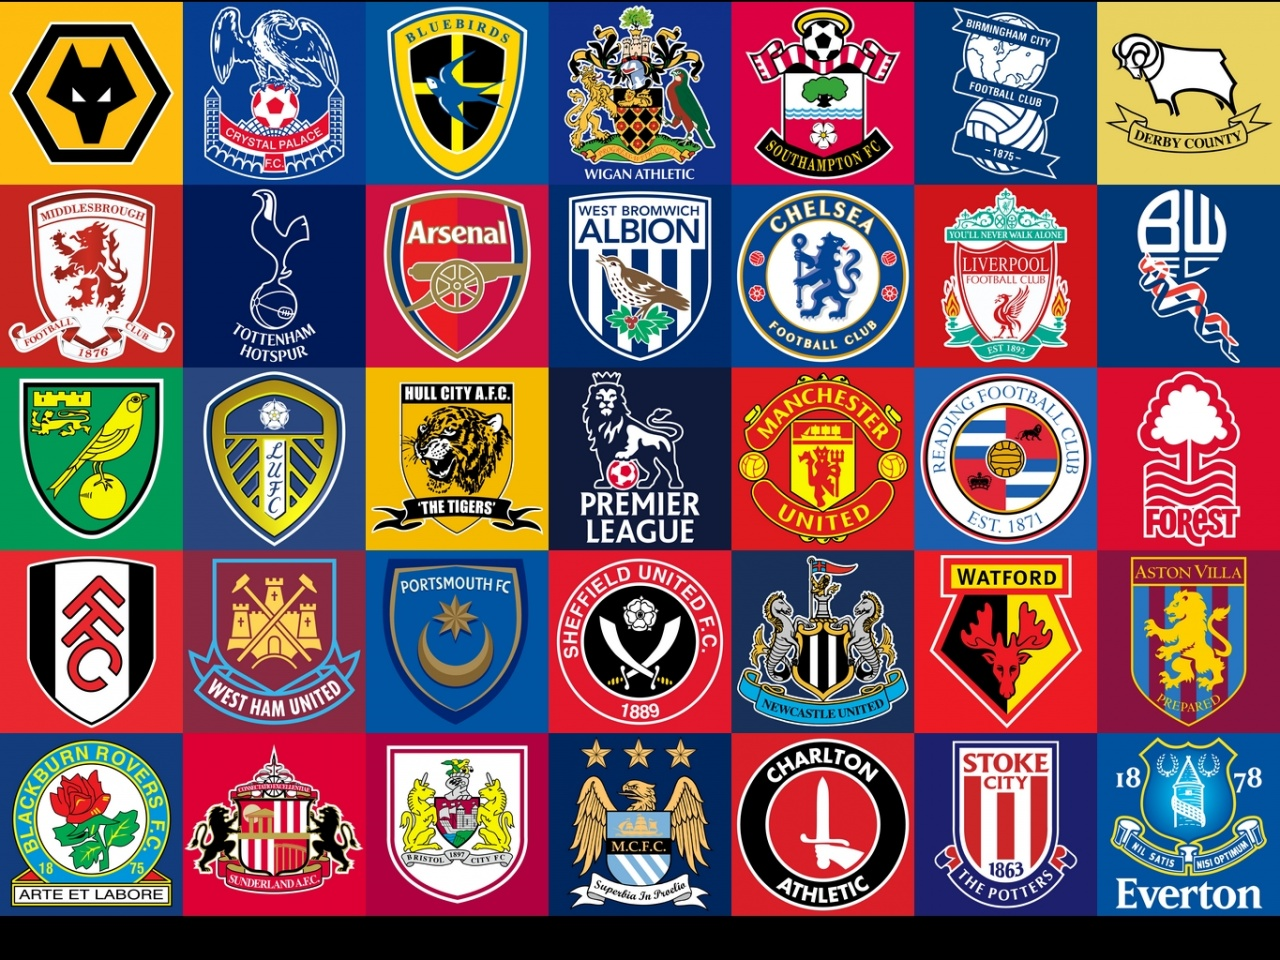 Barclays-Premier-League-Teams-Picture-2864.jpg